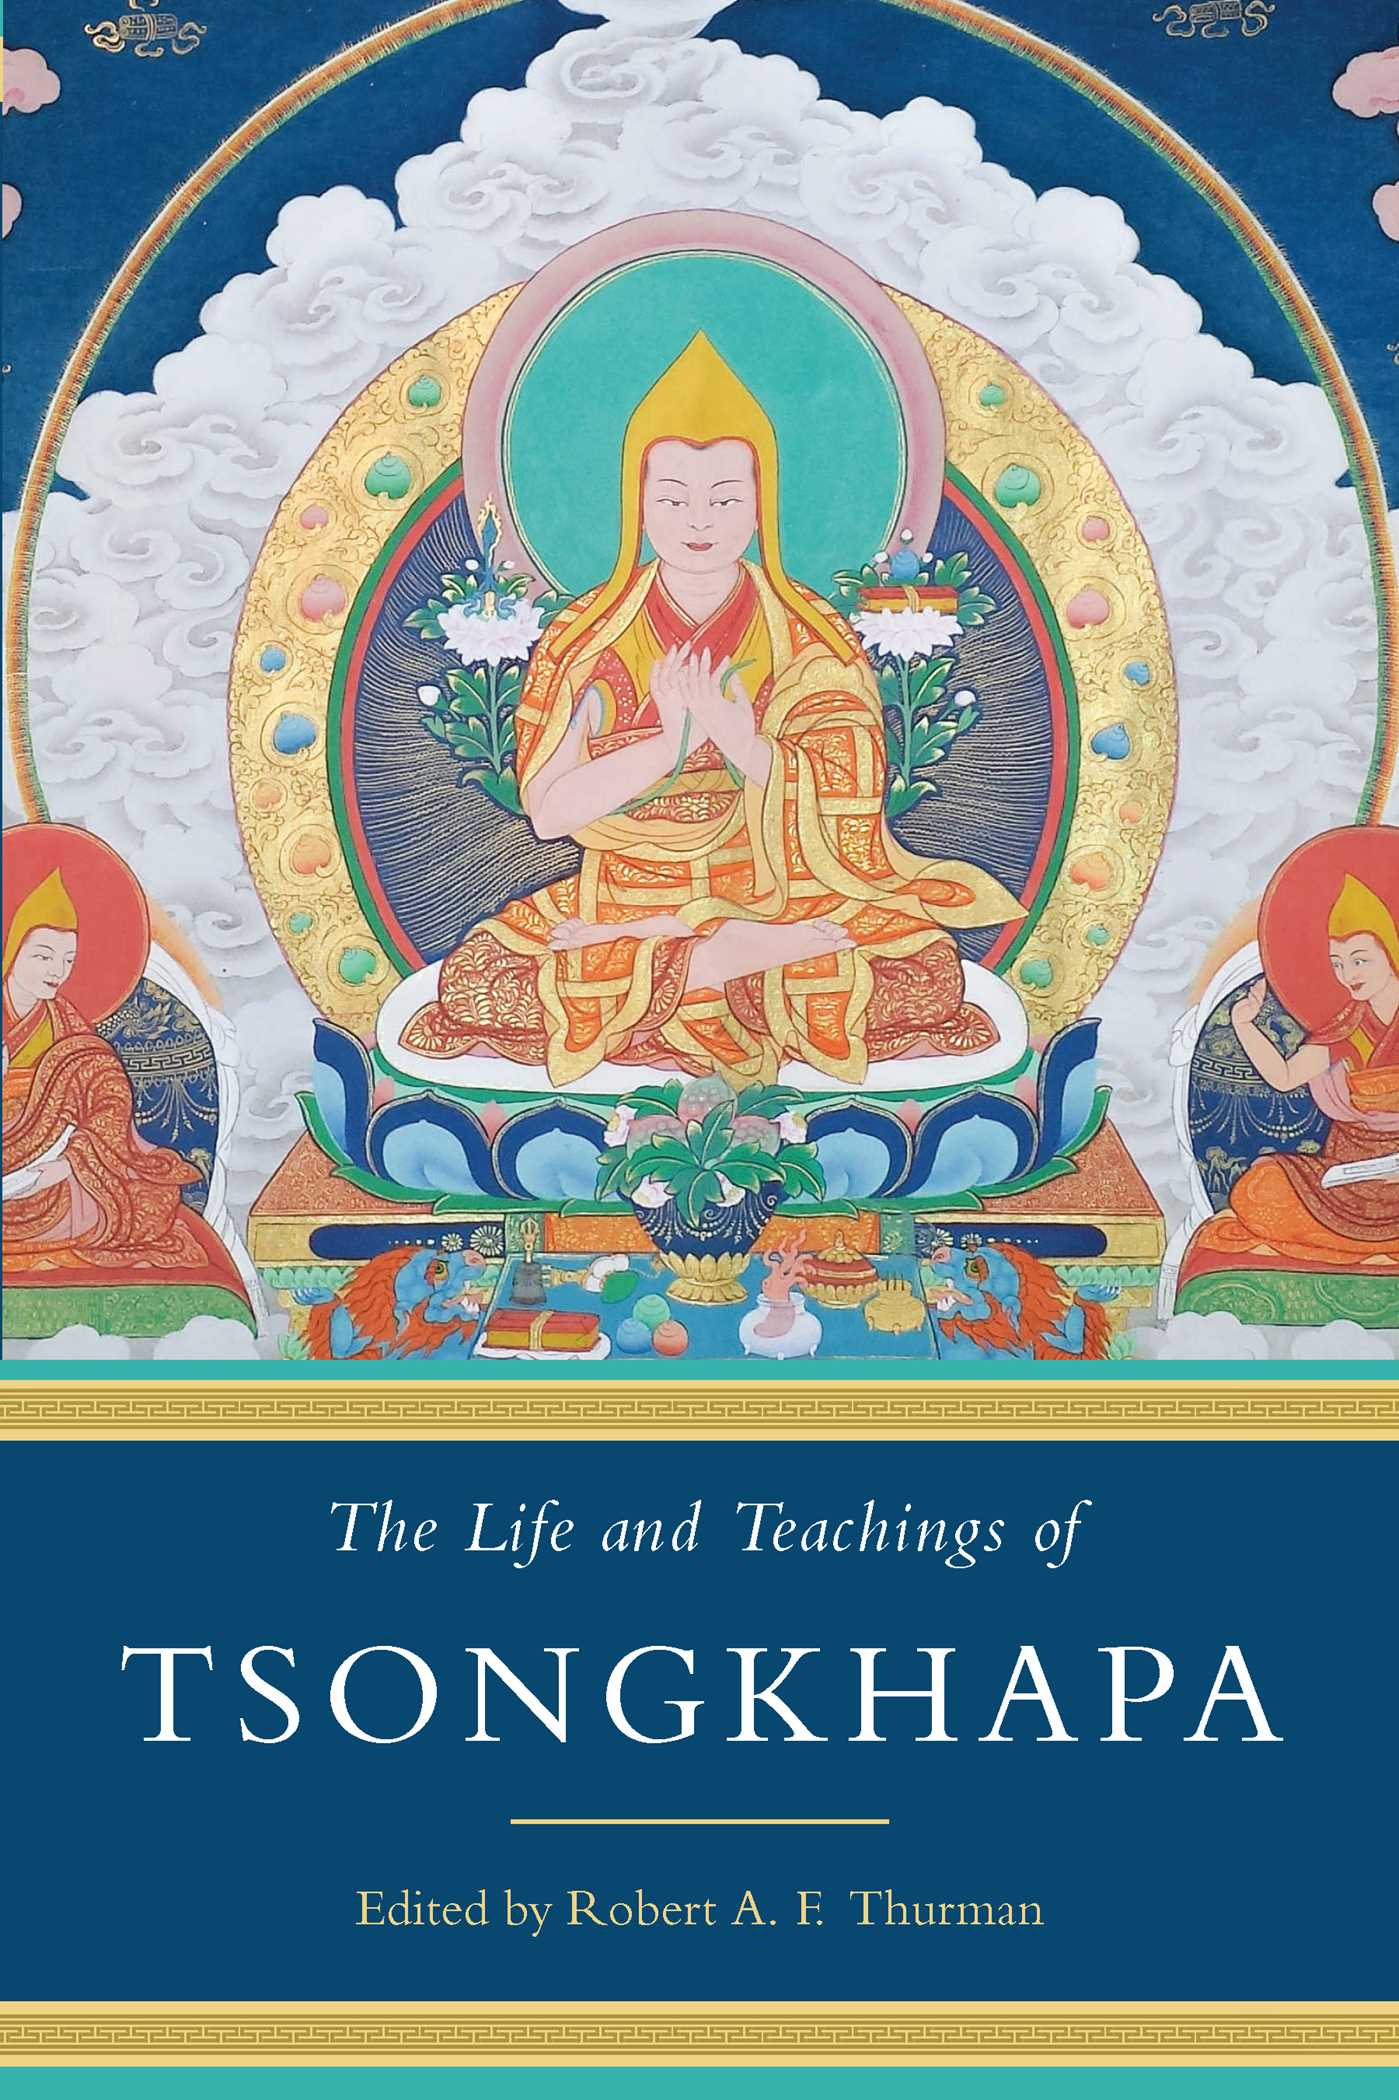 The life and teachings of tsongkhapa 9781614294276 hr